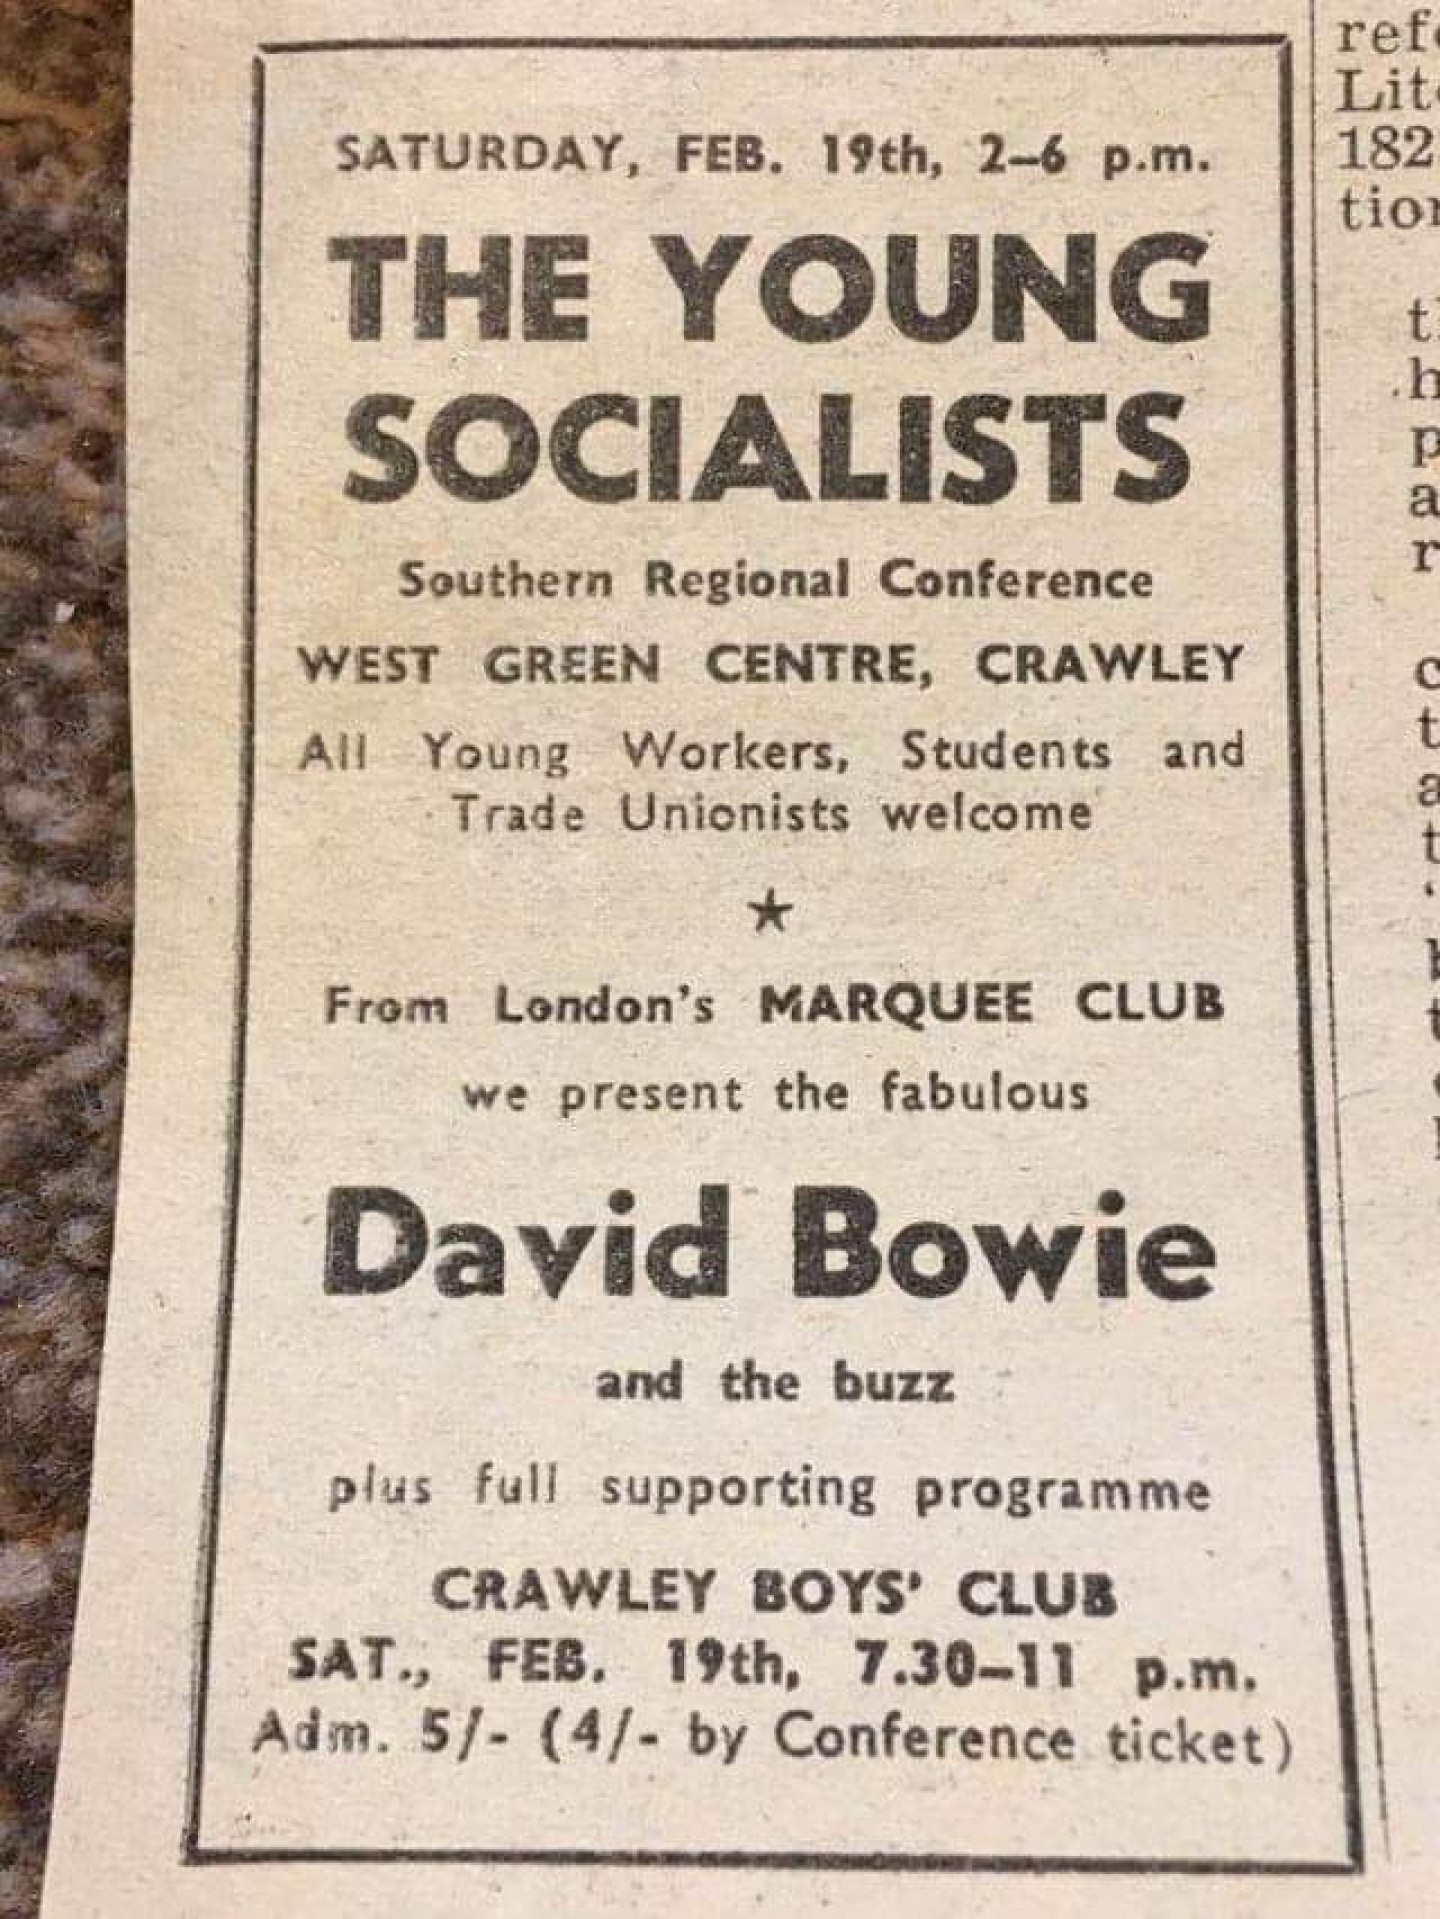 Young Socialists & David Bowie advert